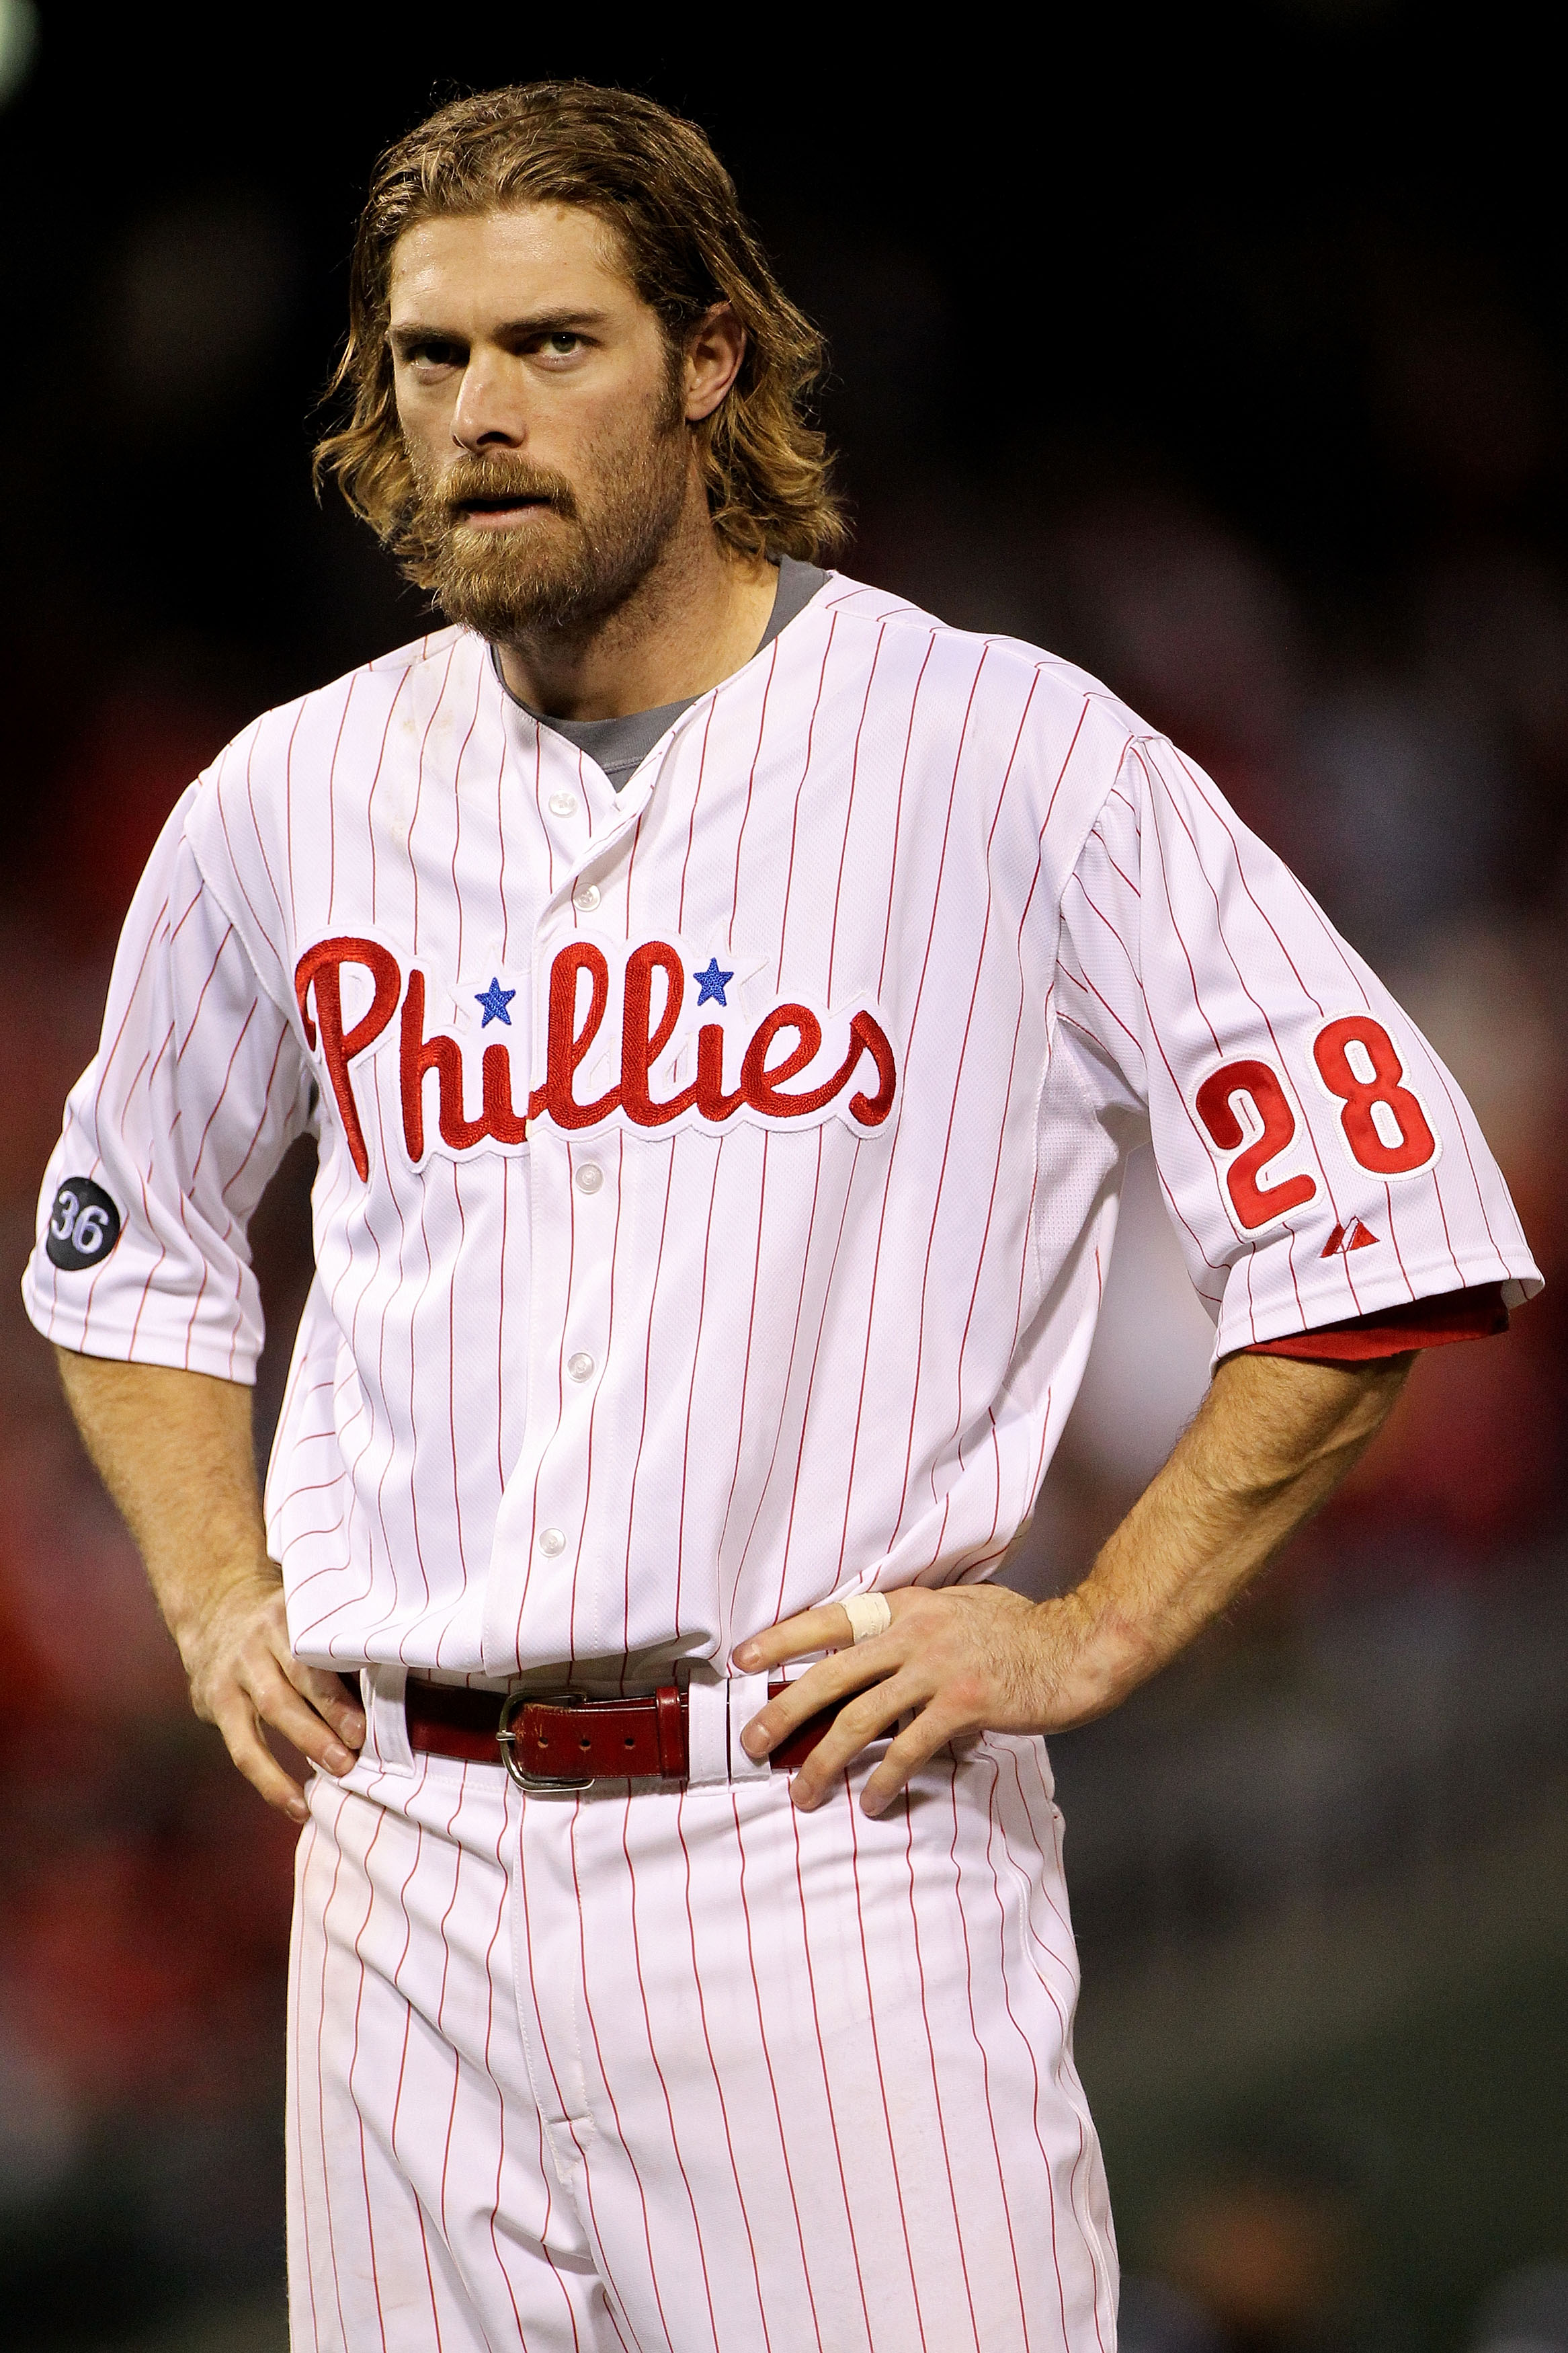 Is Werth merely cashing in, or are the Nationals truly devoted to playing winning baseball?